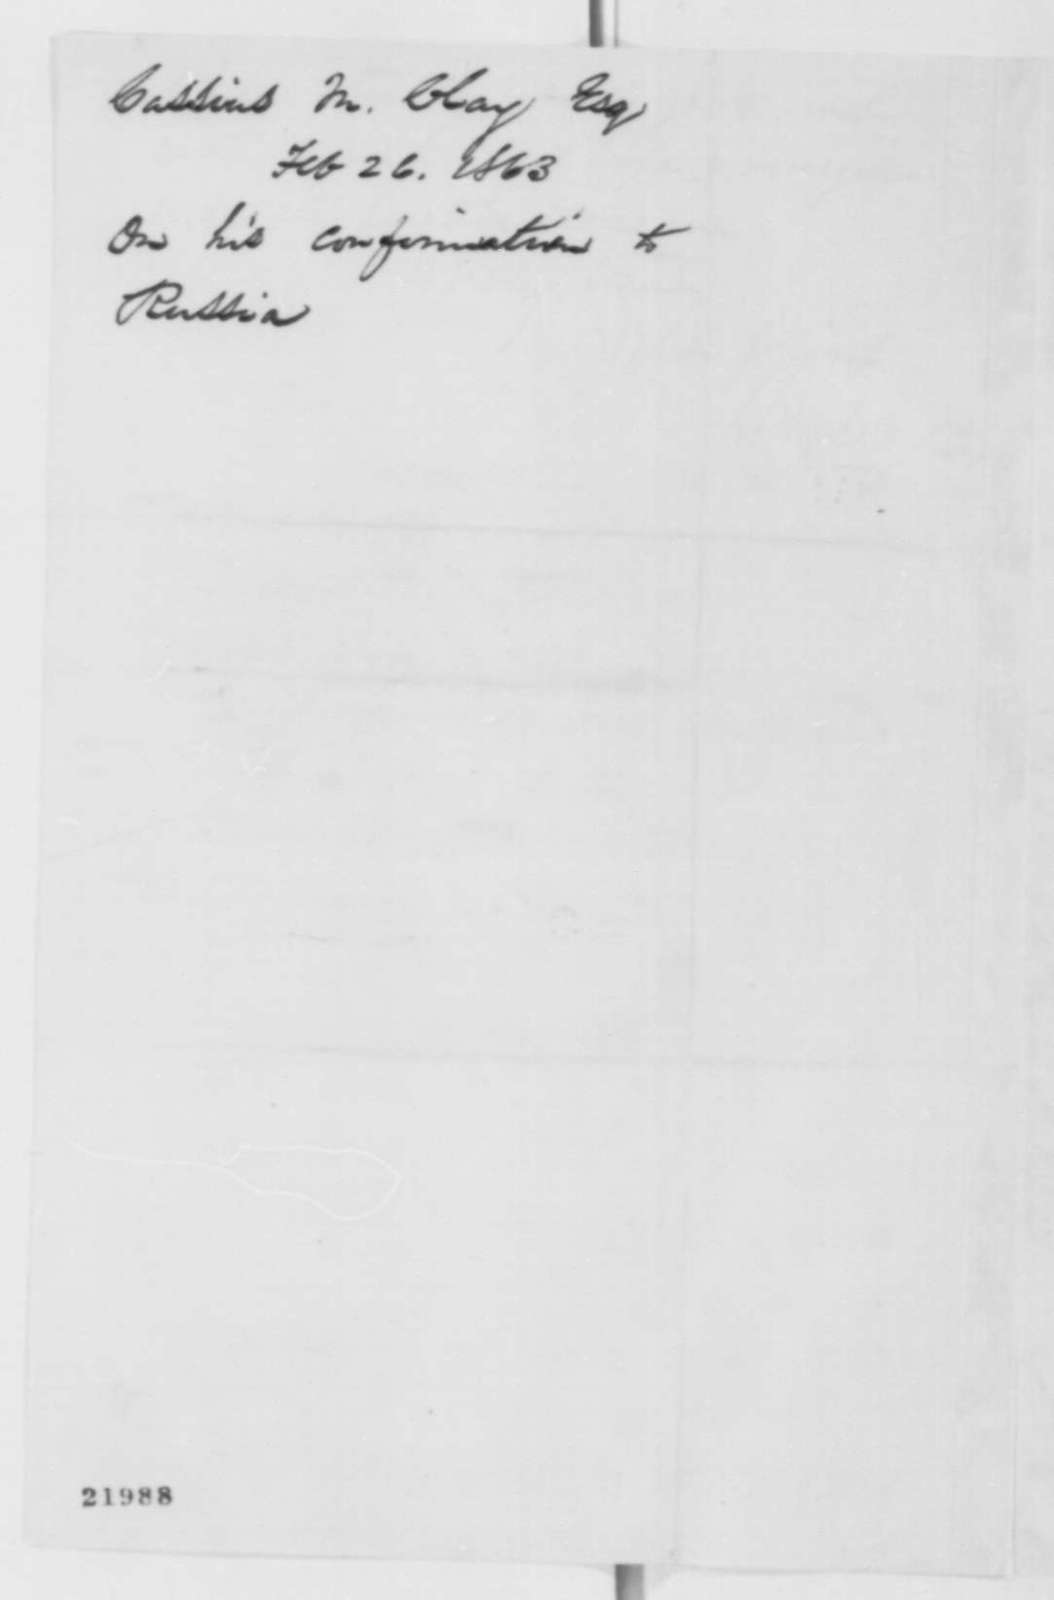 Cassius M. Clay to Abraham Lincoln, Thursday, February 26, 1863  (Appointment as minister to Russia)